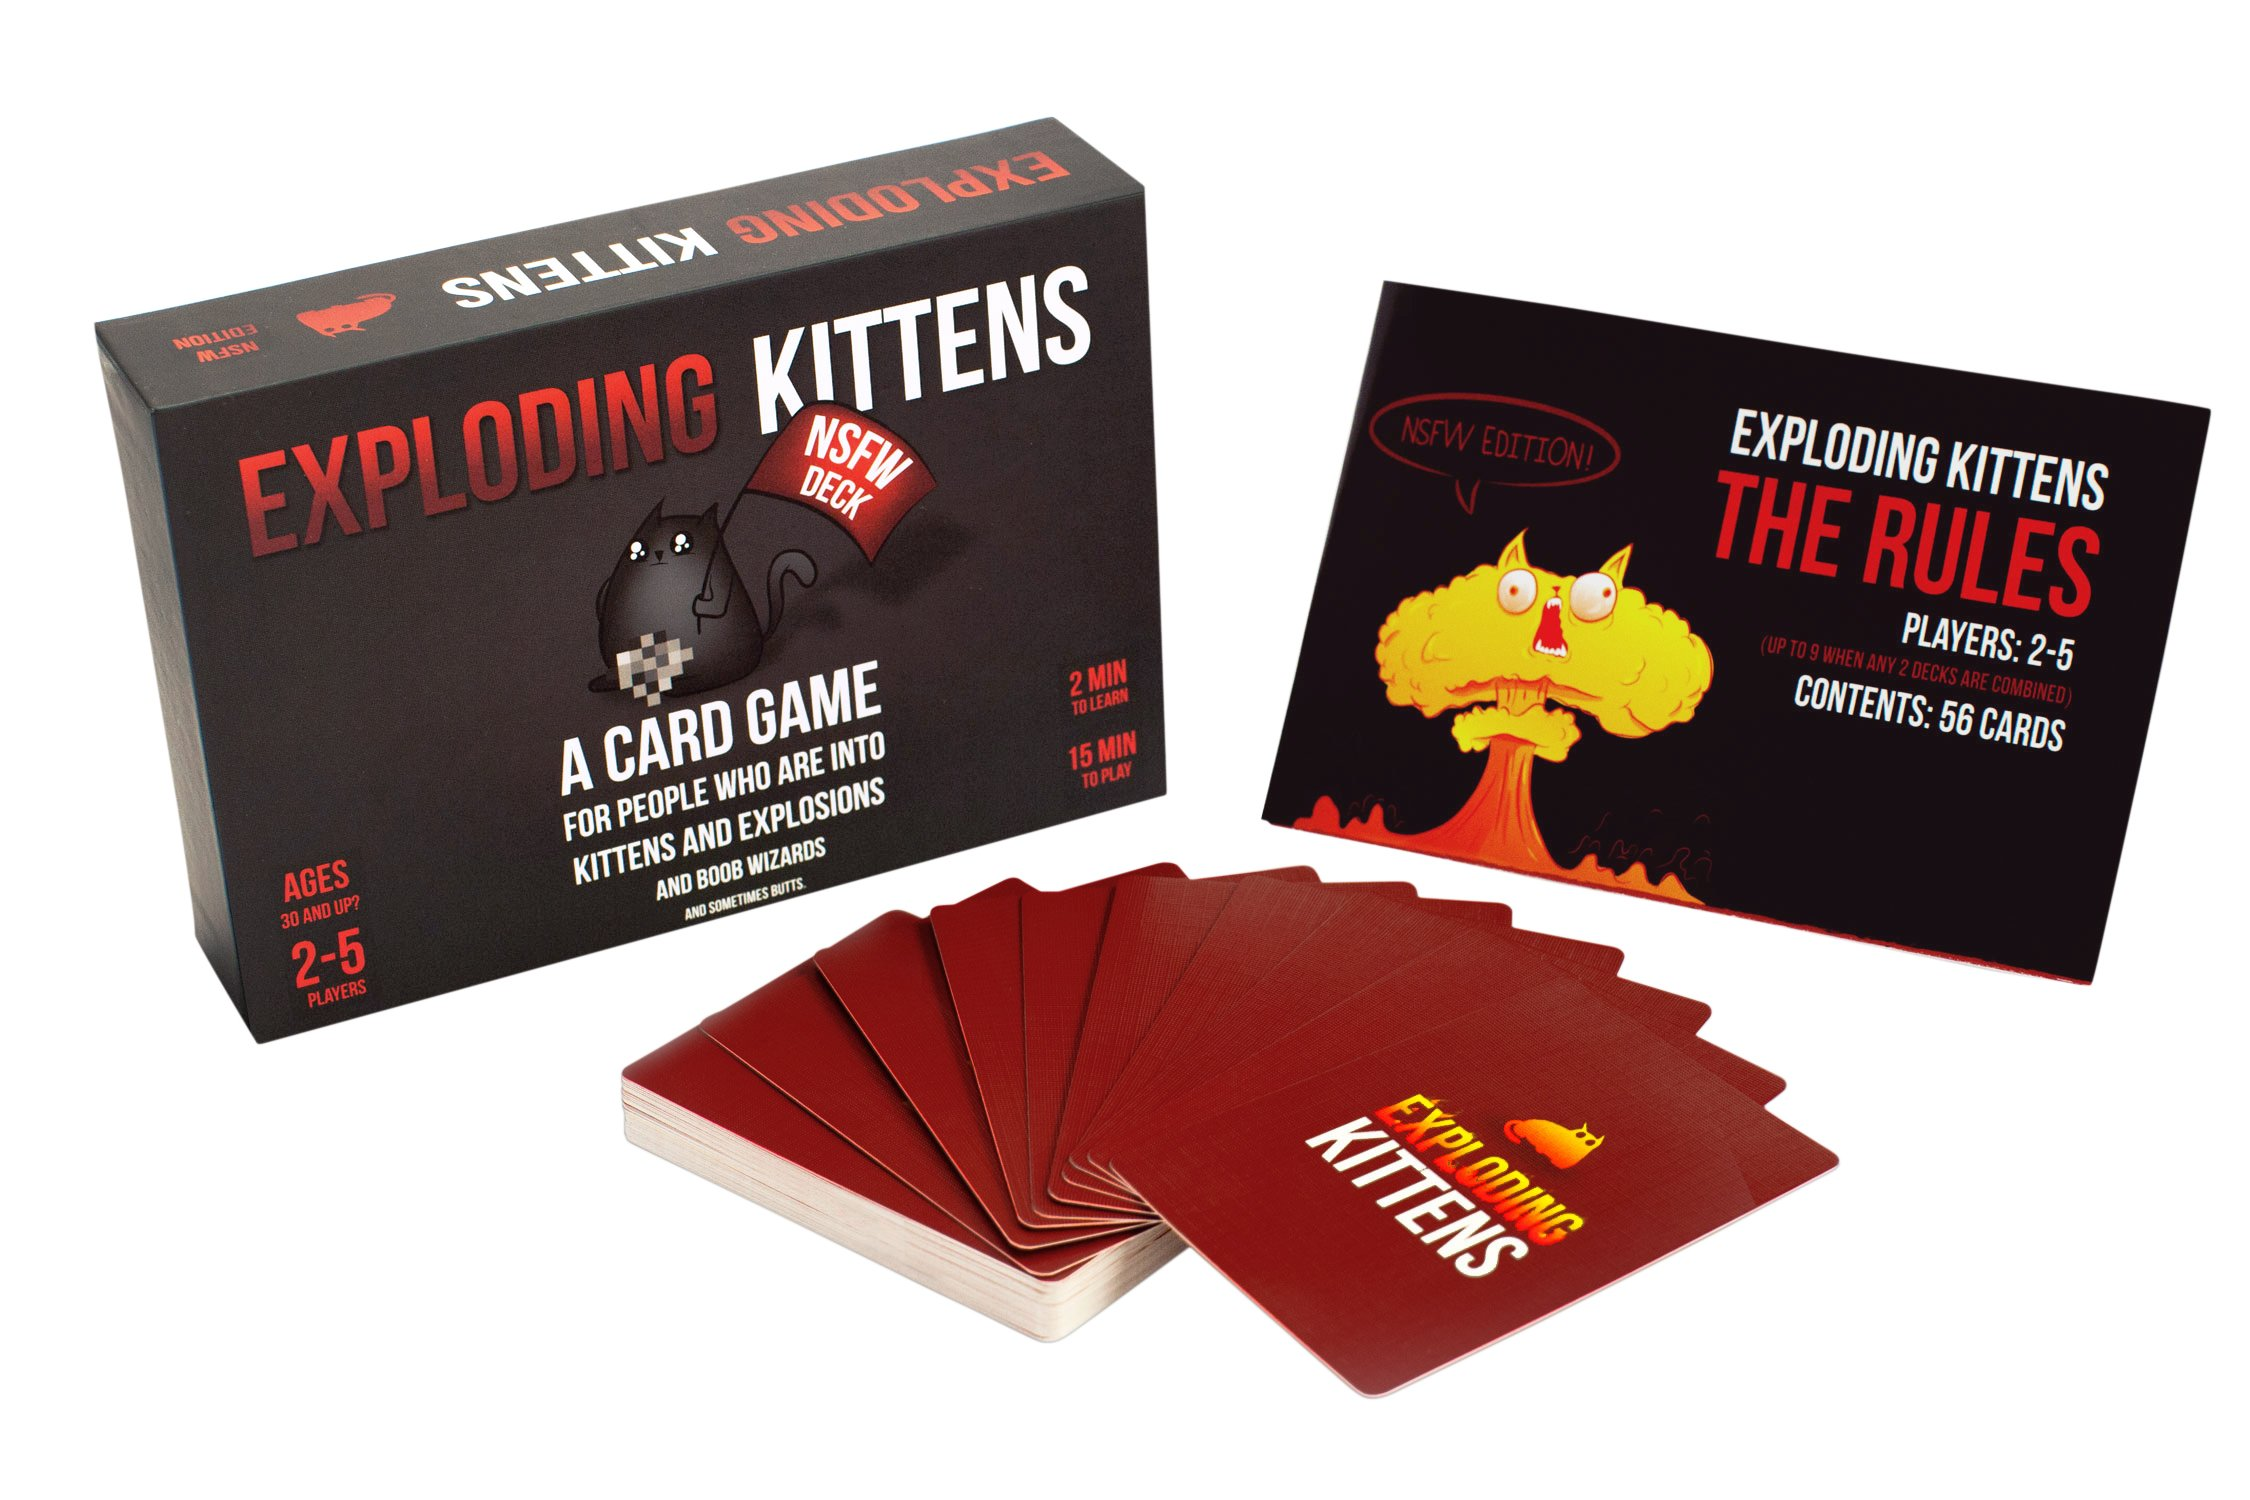 Exploding Kittens: NSFW Edition (Explicit Content - ADULTS ONLY!) by Exploding Kittens LLC (Image #2)